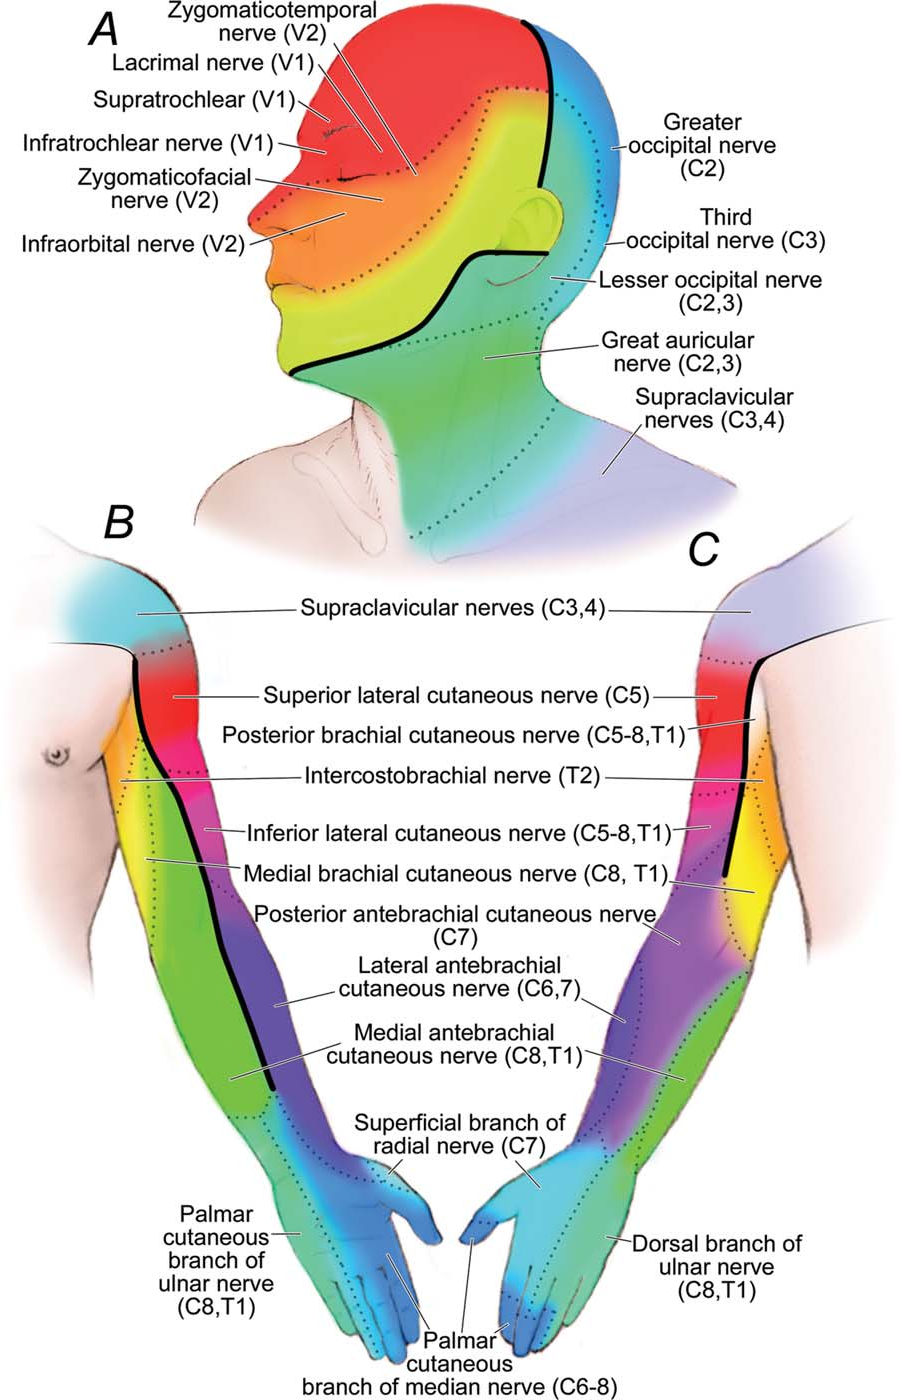 Figure 3 From Mapping Sensory Nerve Communications Between